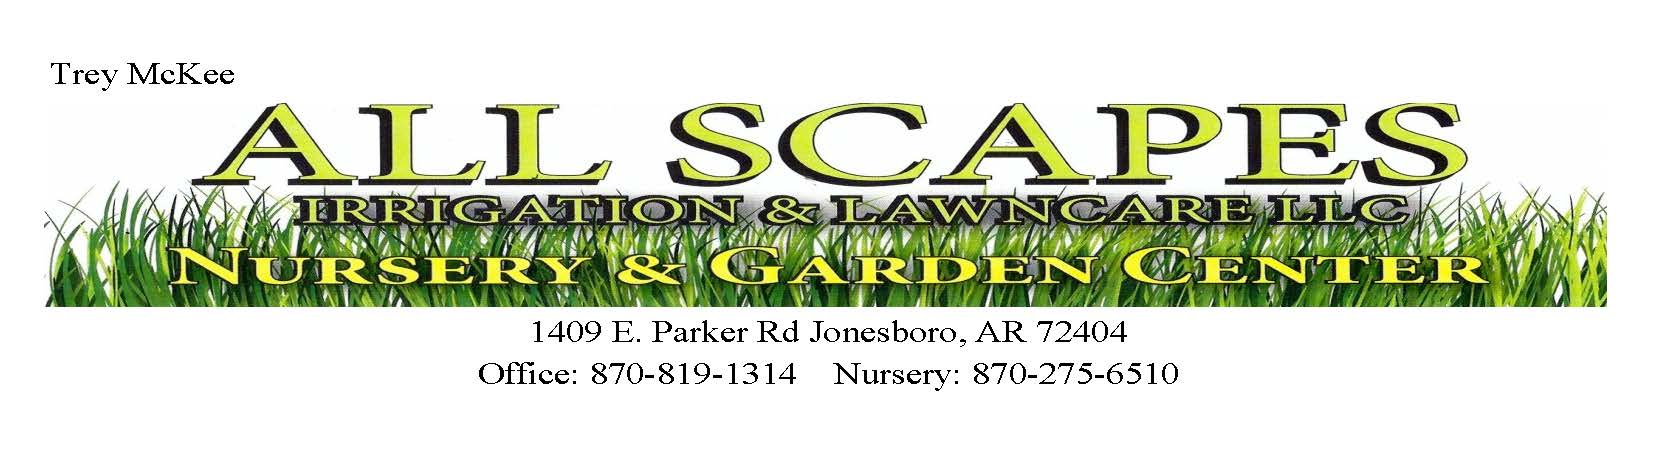 All Scapes Logo for Arkansas Families.jpg